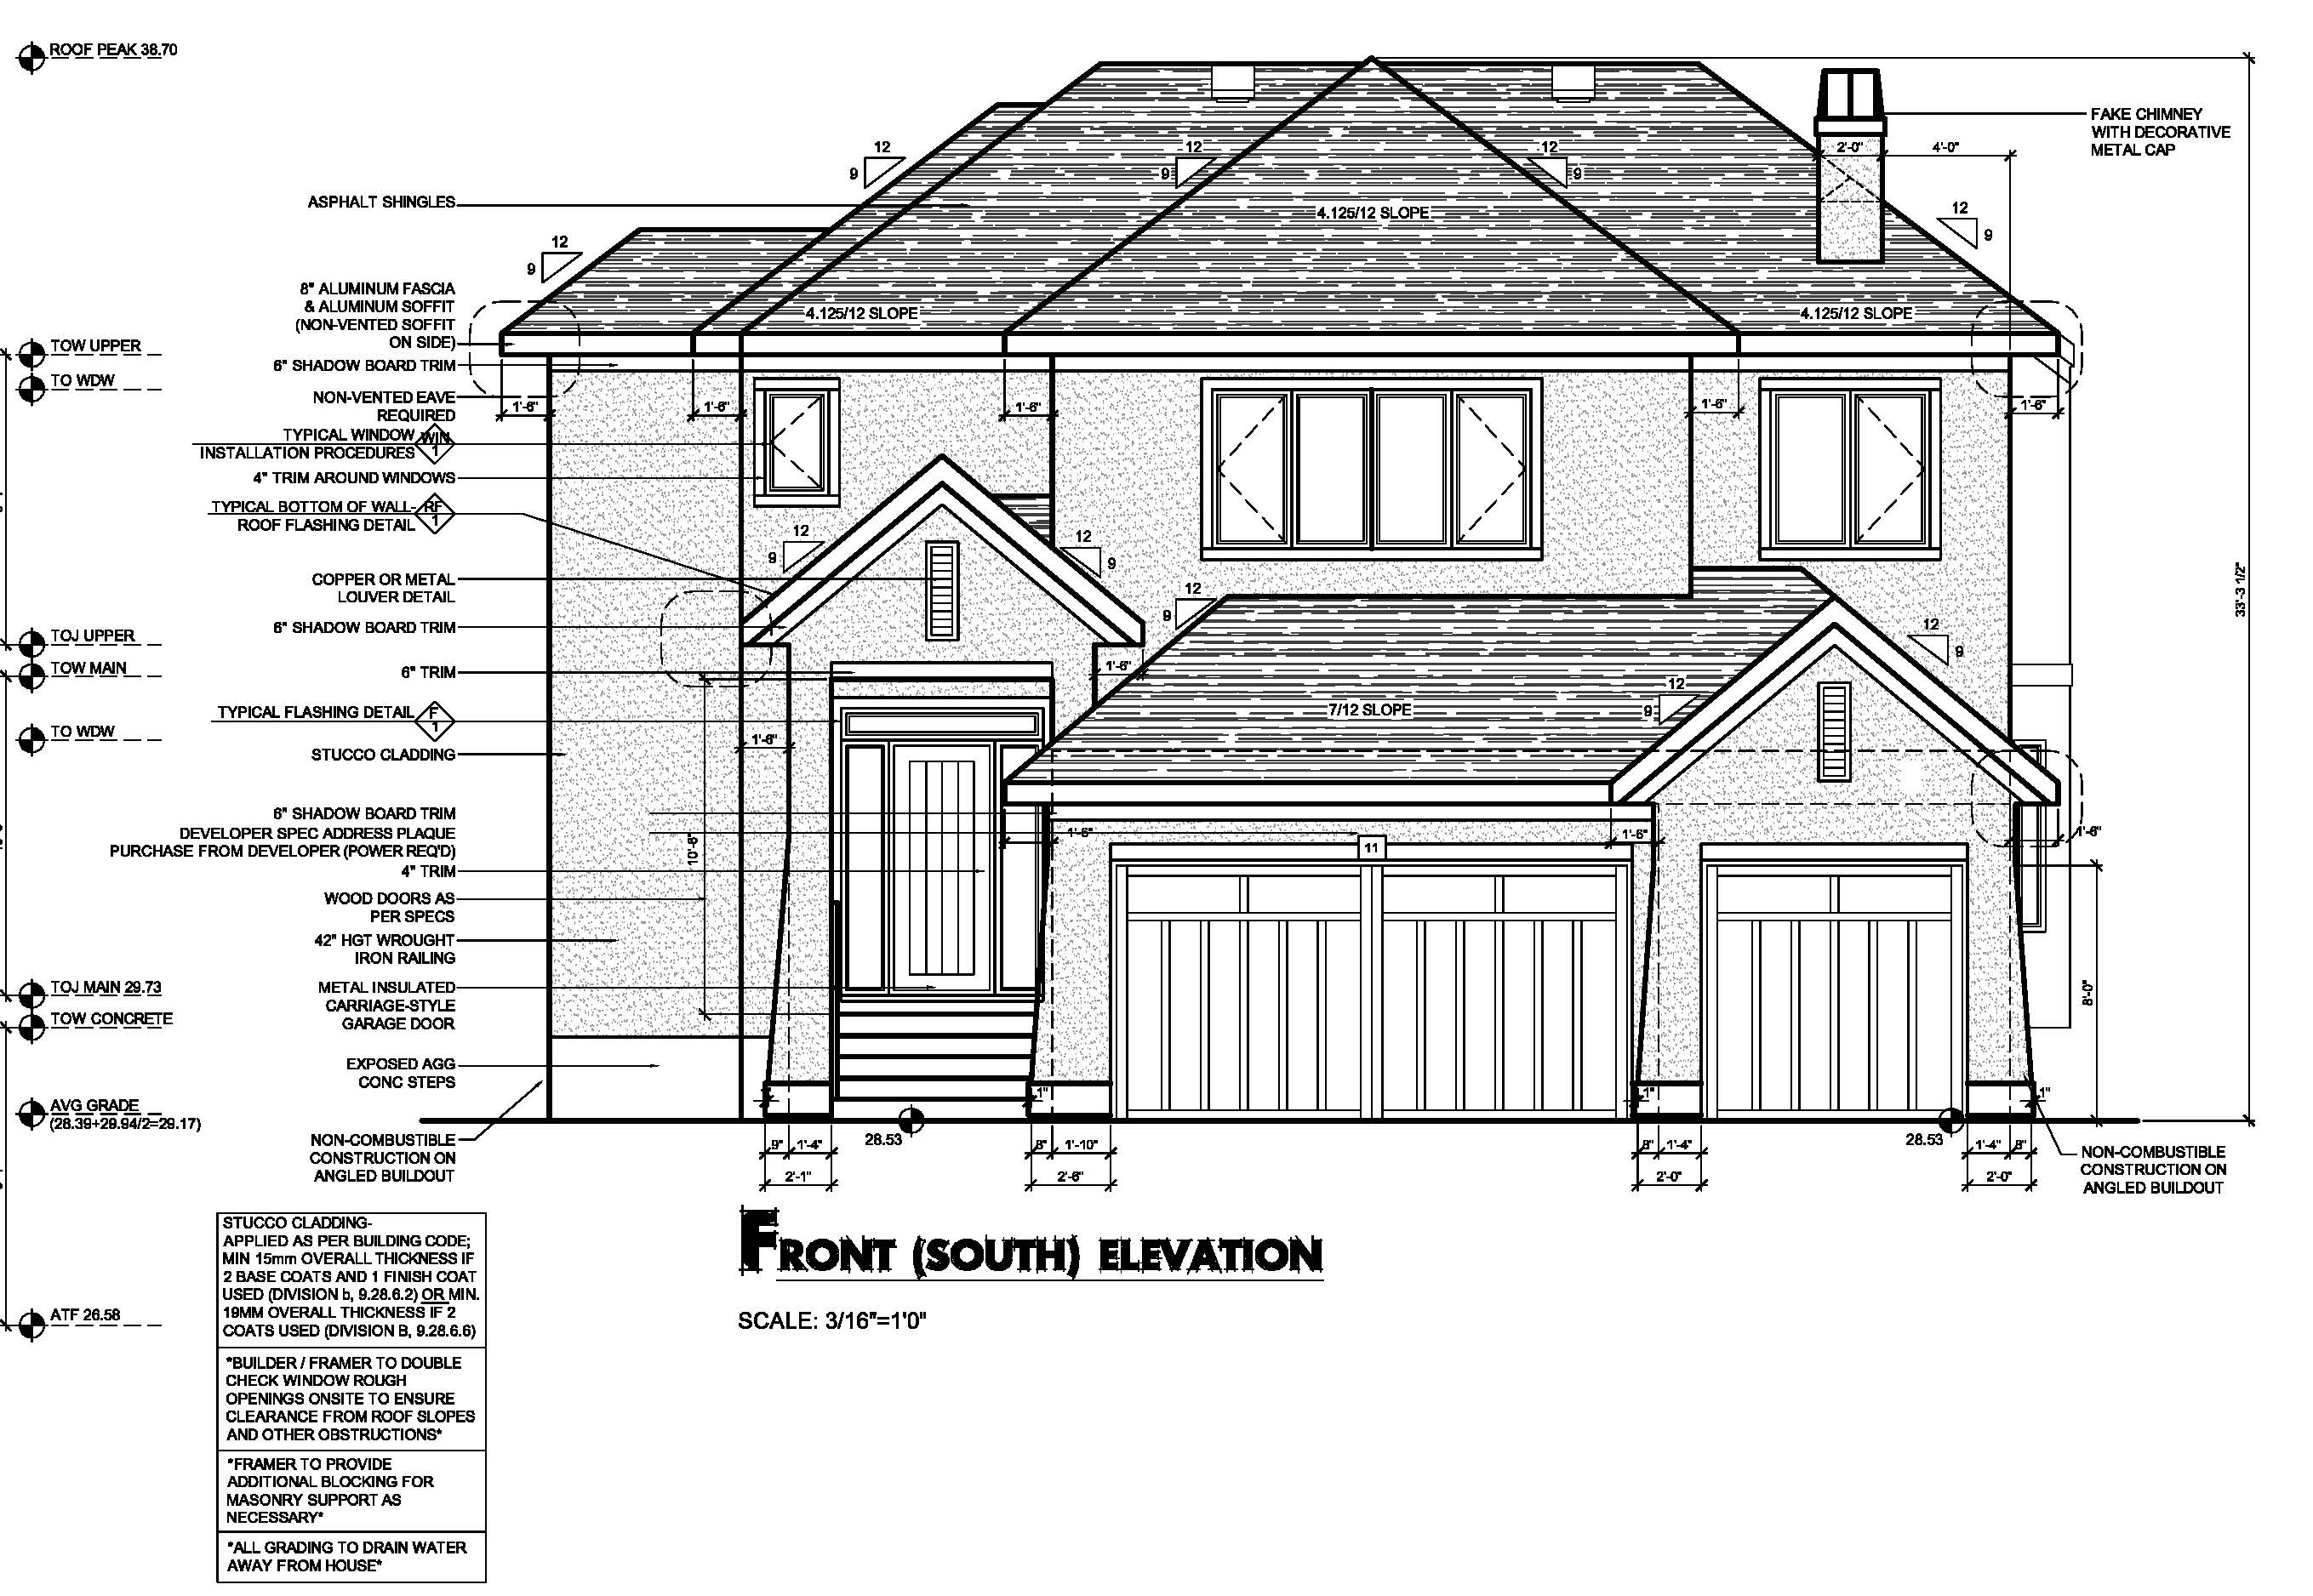 House Plans With Two Master Suites On Main Floor 2 together with Home Design Story Weekly Update likewise 8149 as well 296182112967521761 as well Vintage House Plans With Breezeways. on detached carport designs